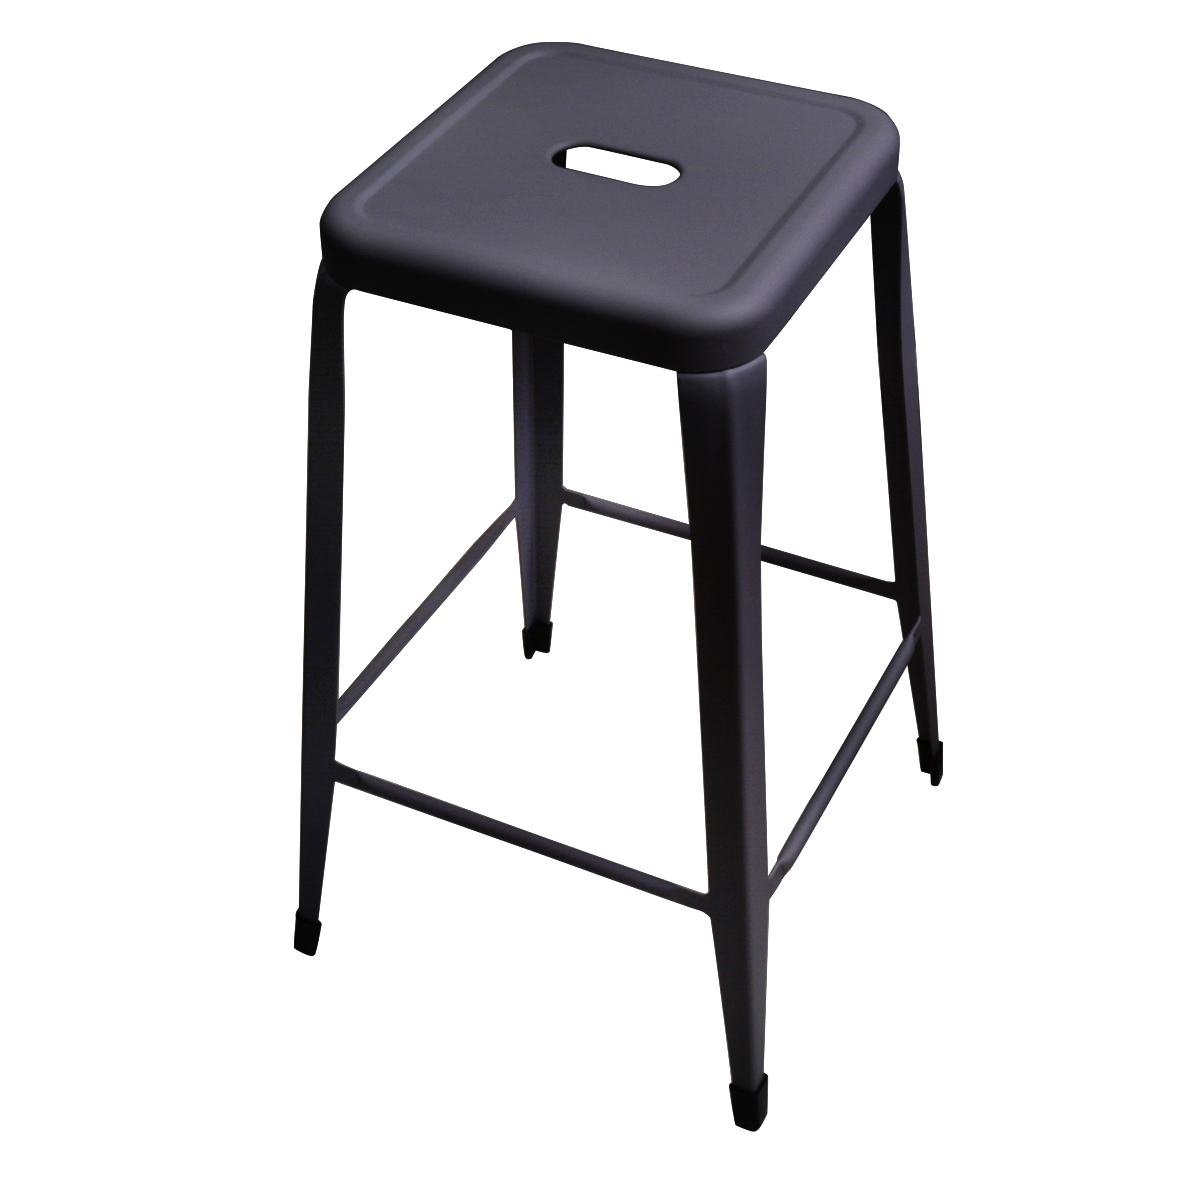 frandis tabouret de bar factory metal noir mat pas cher achat vente tabourets rueducommerce. Black Bedroom Furniture Sets. Home Design Ideas